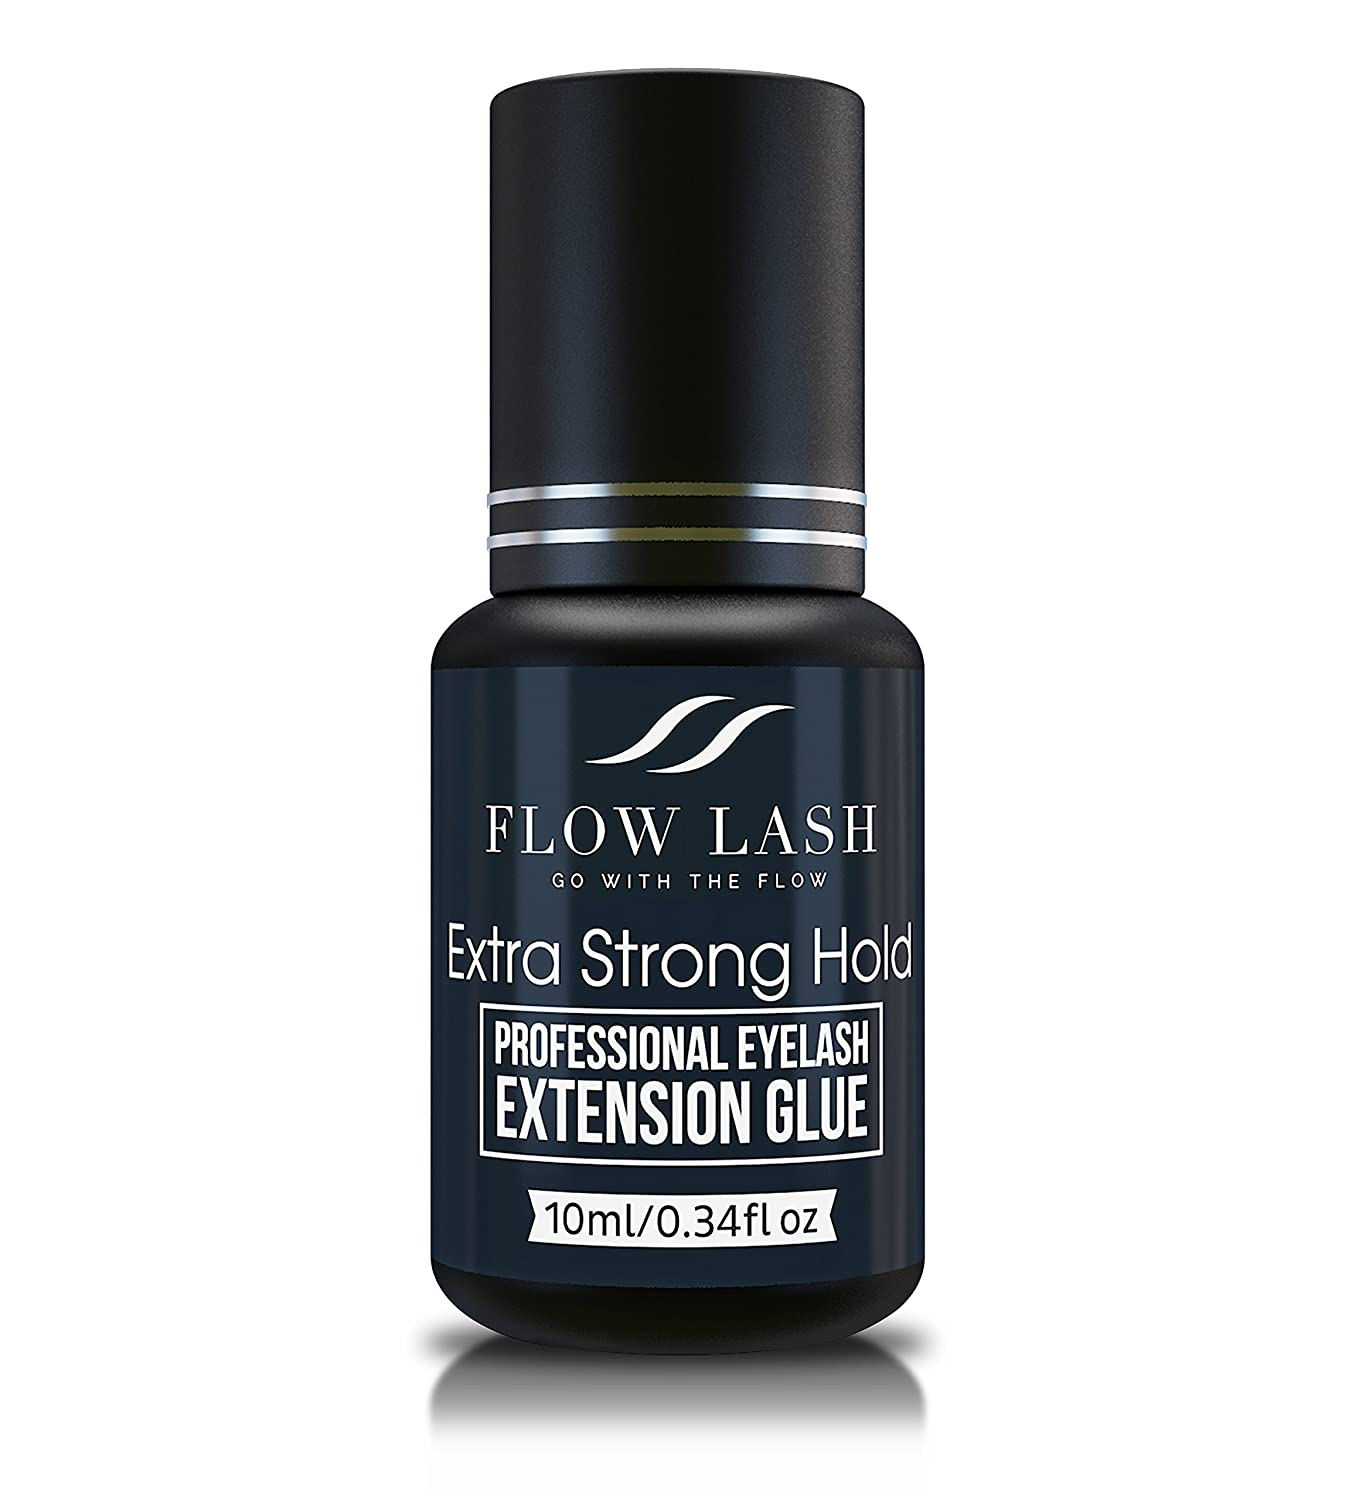 300645965bb Amazon.com: Eyelash Extension Glue - Extra Strong Hold, Professional ...